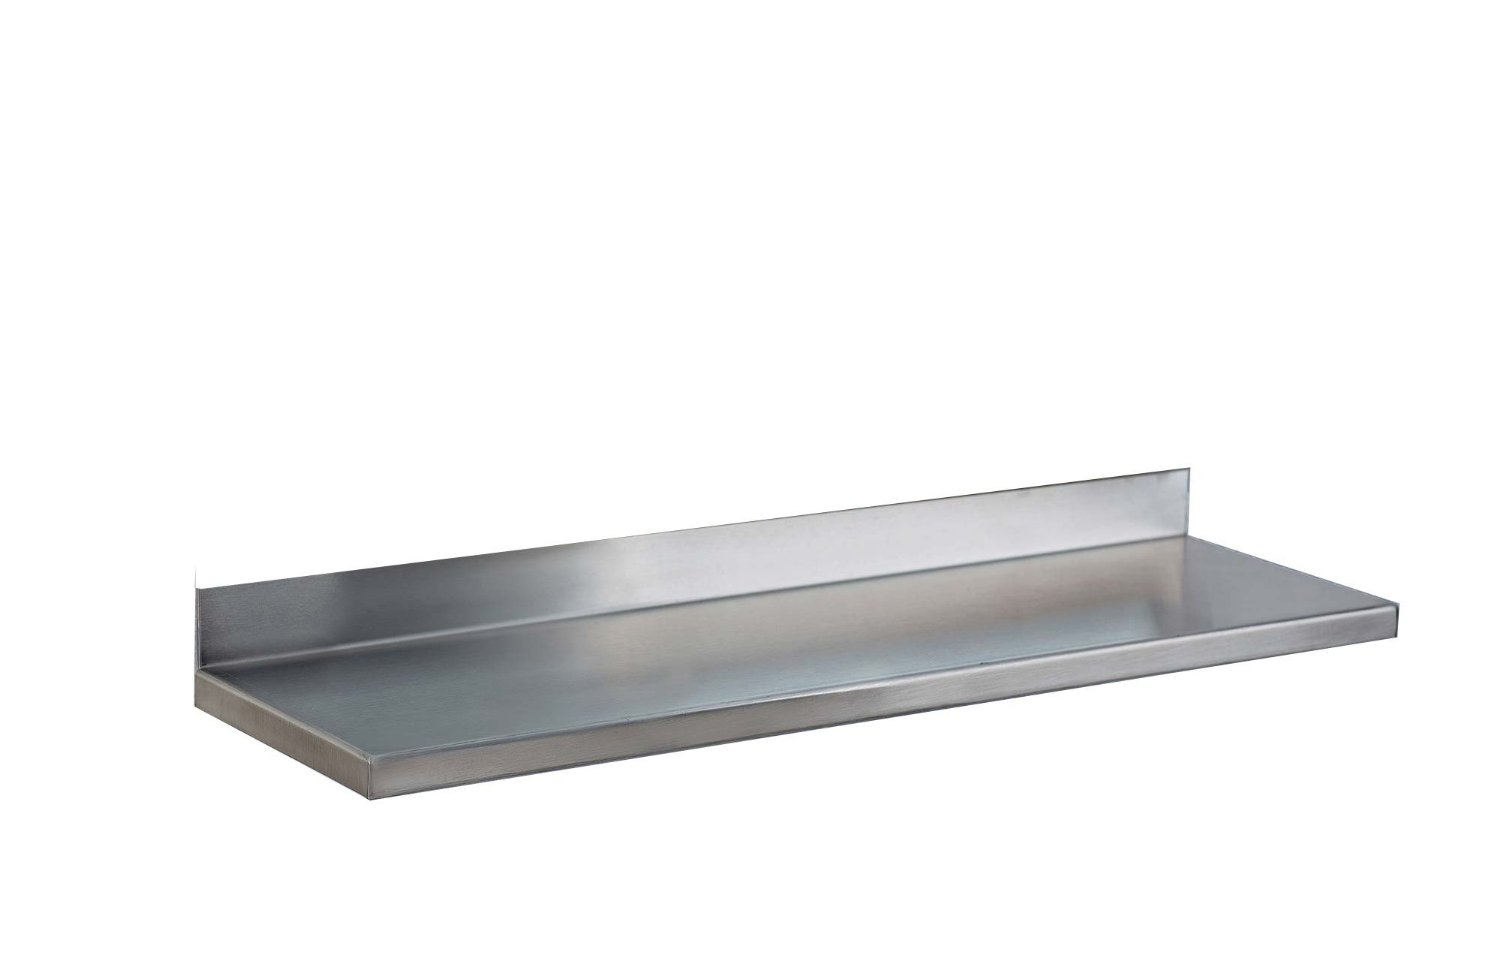 24-inch x 6-inch, Integral shelf, bright finish